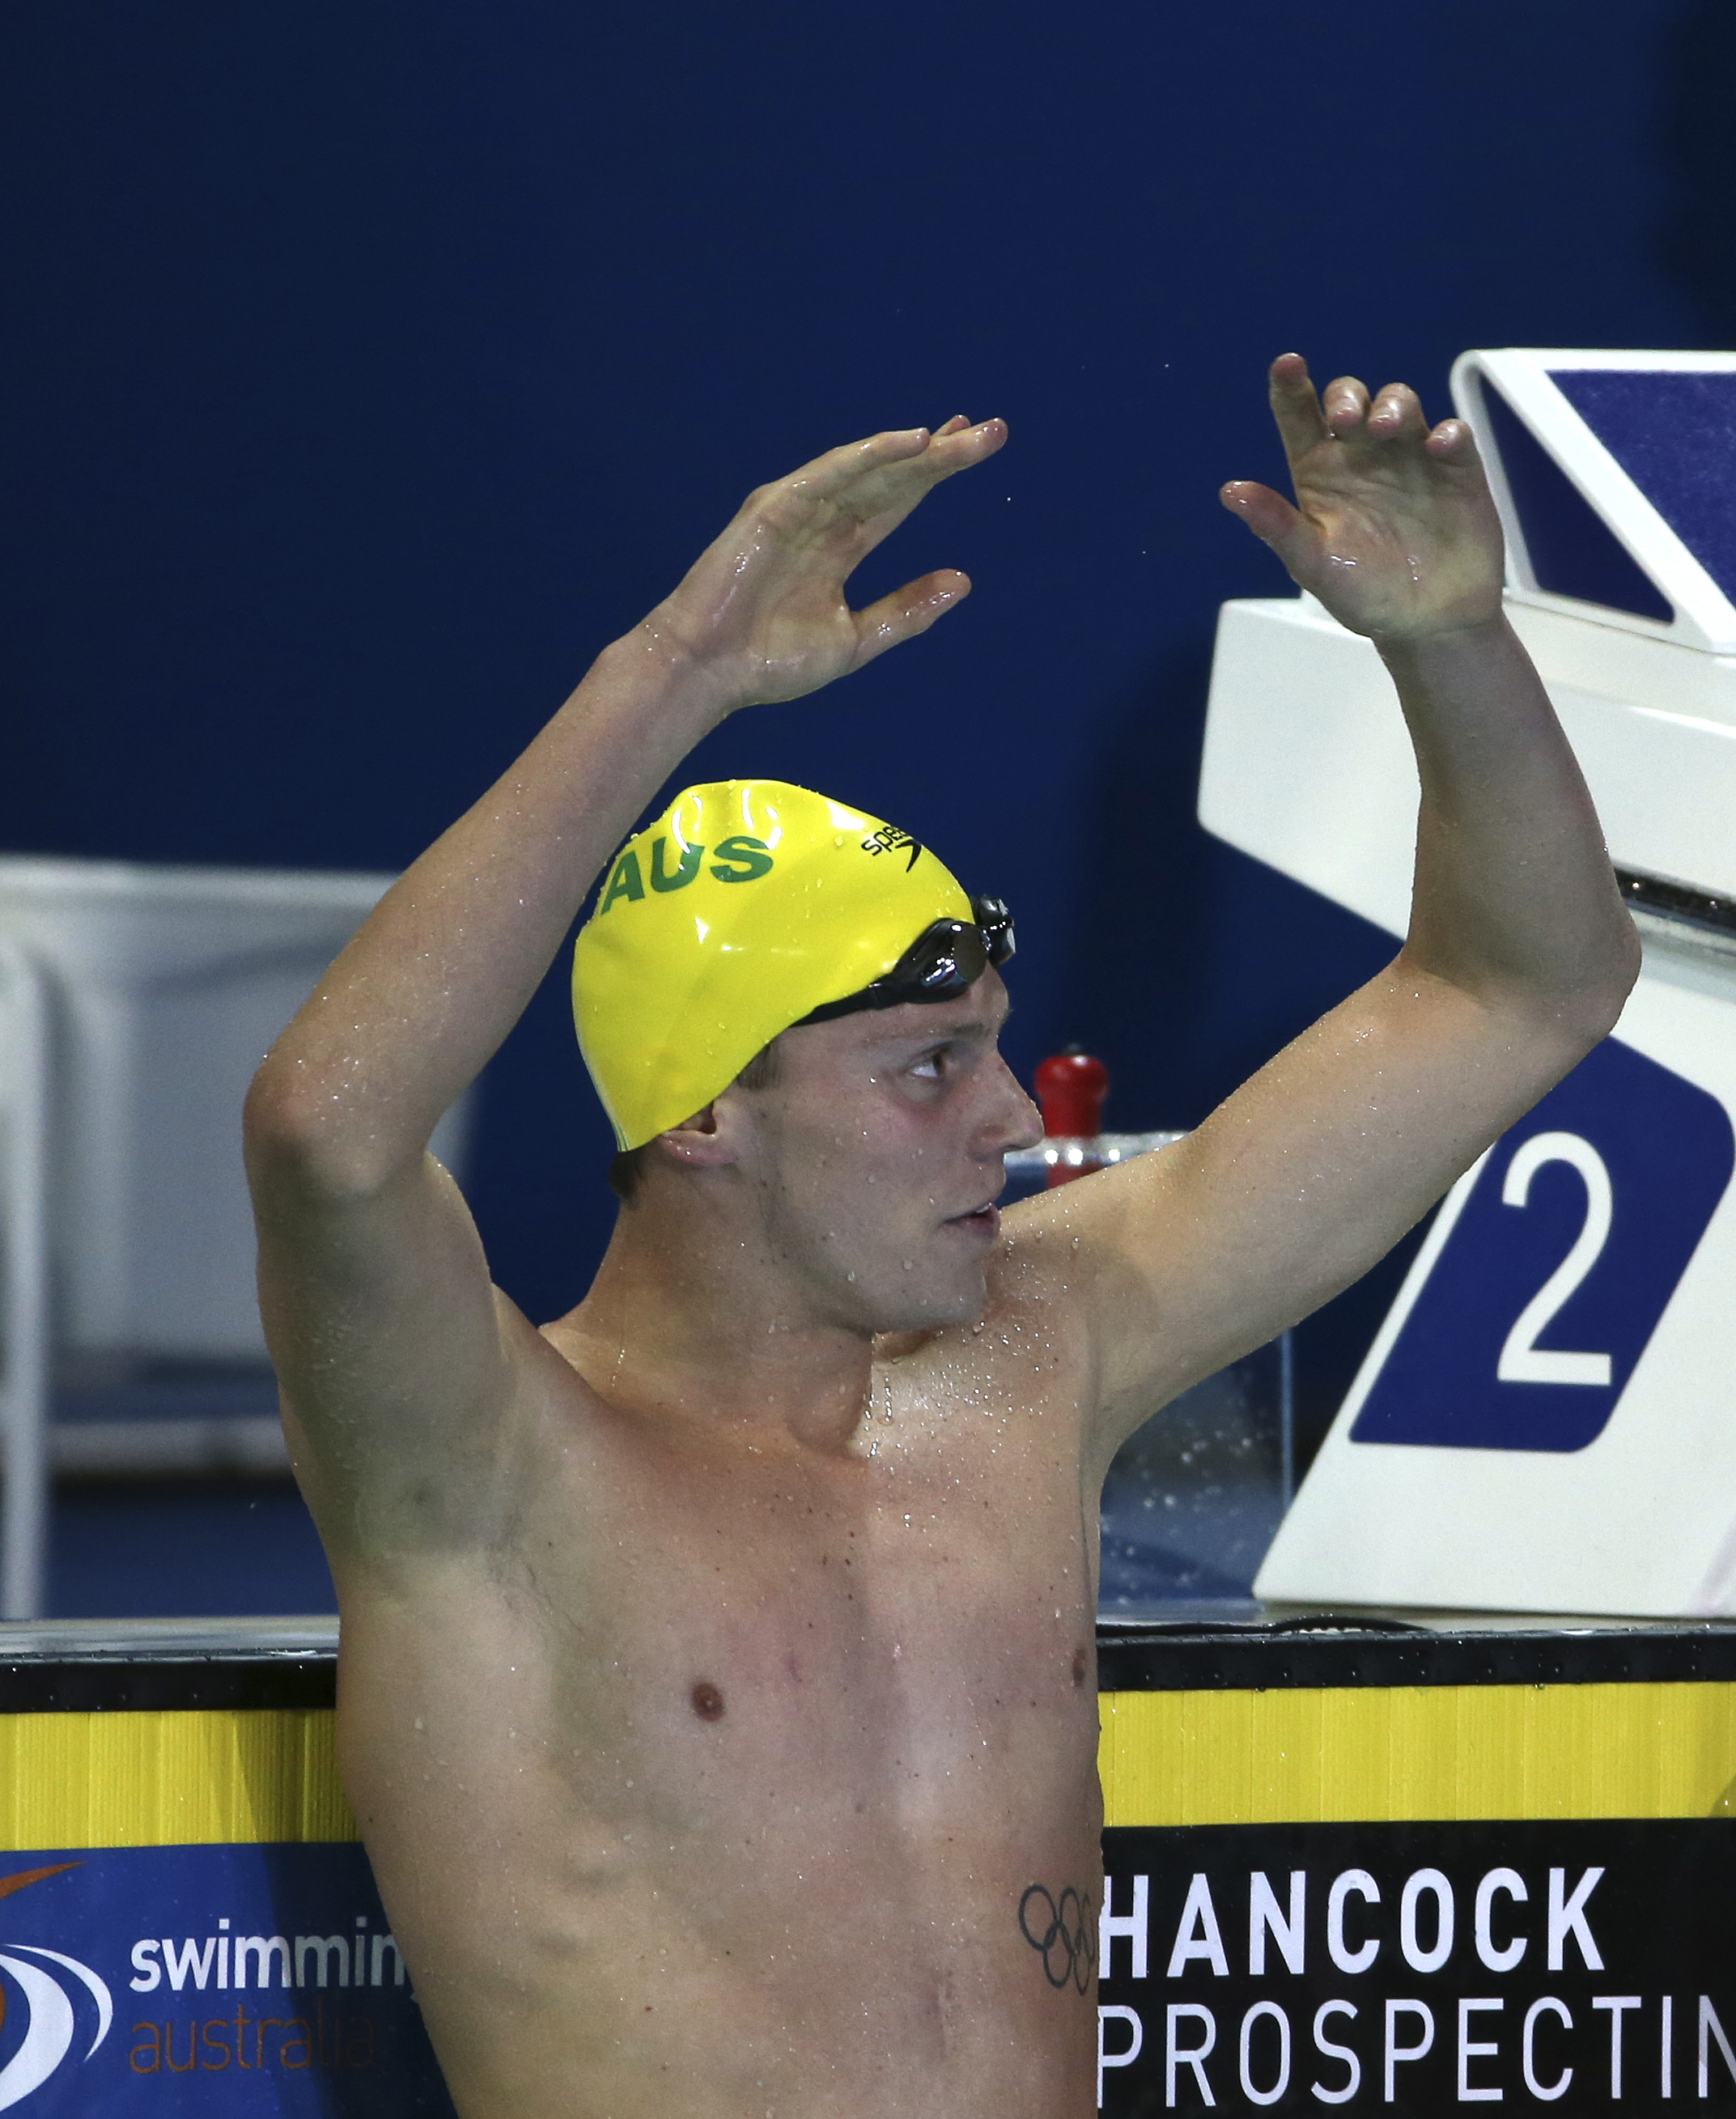 Thomas Fraser-Holmes holds his arms up in the air after winning his men's 200m freestyle final at the Pan Pacific swimming championships in Gold Coast, Australia, Thursday, Aug. 21, 2014